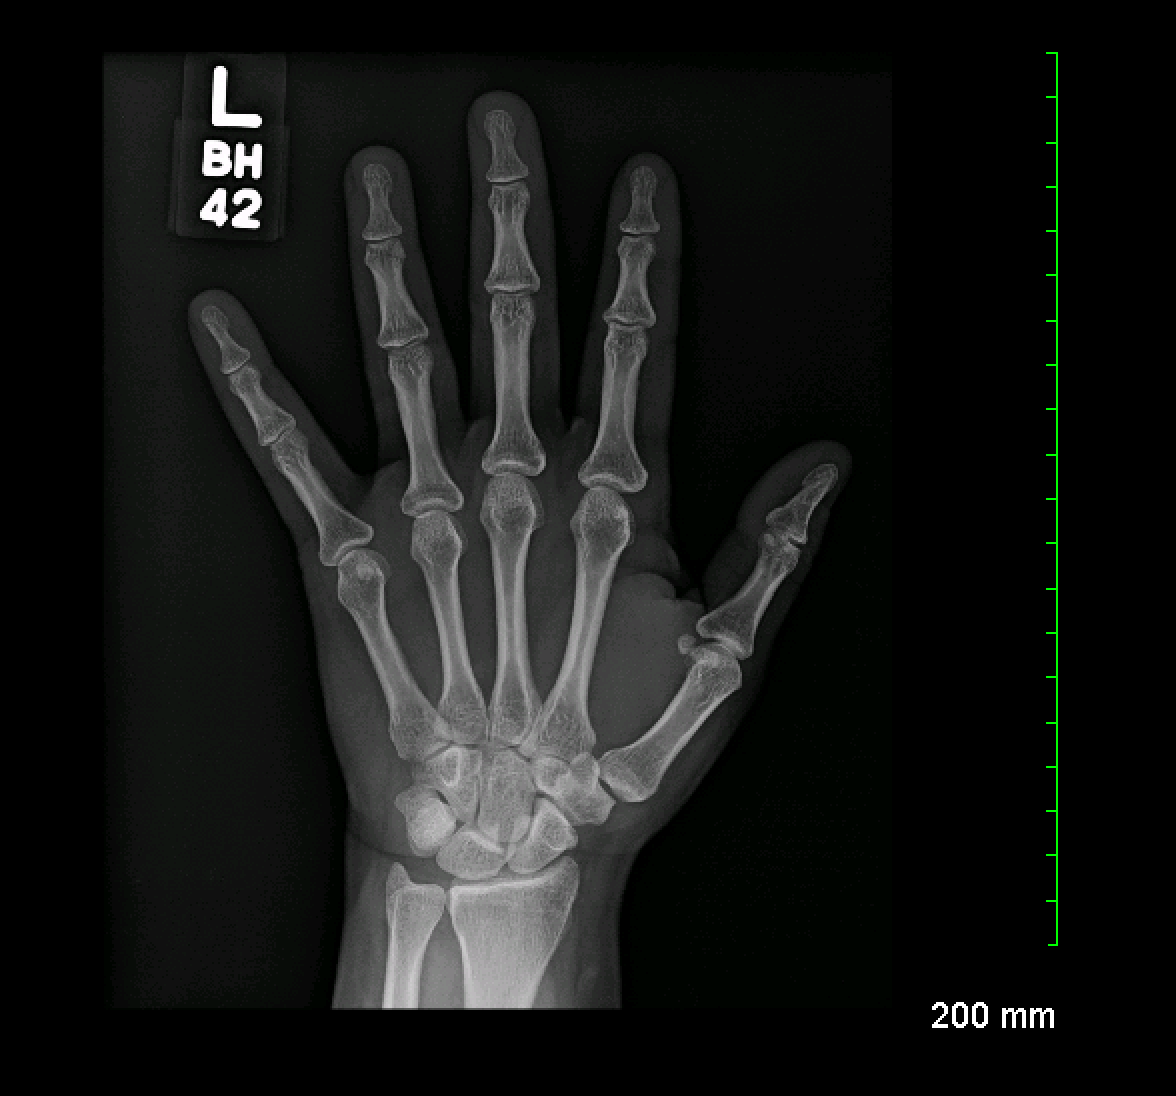 Archive Of Unremarkable Radiological Studies Left Hand X Ray